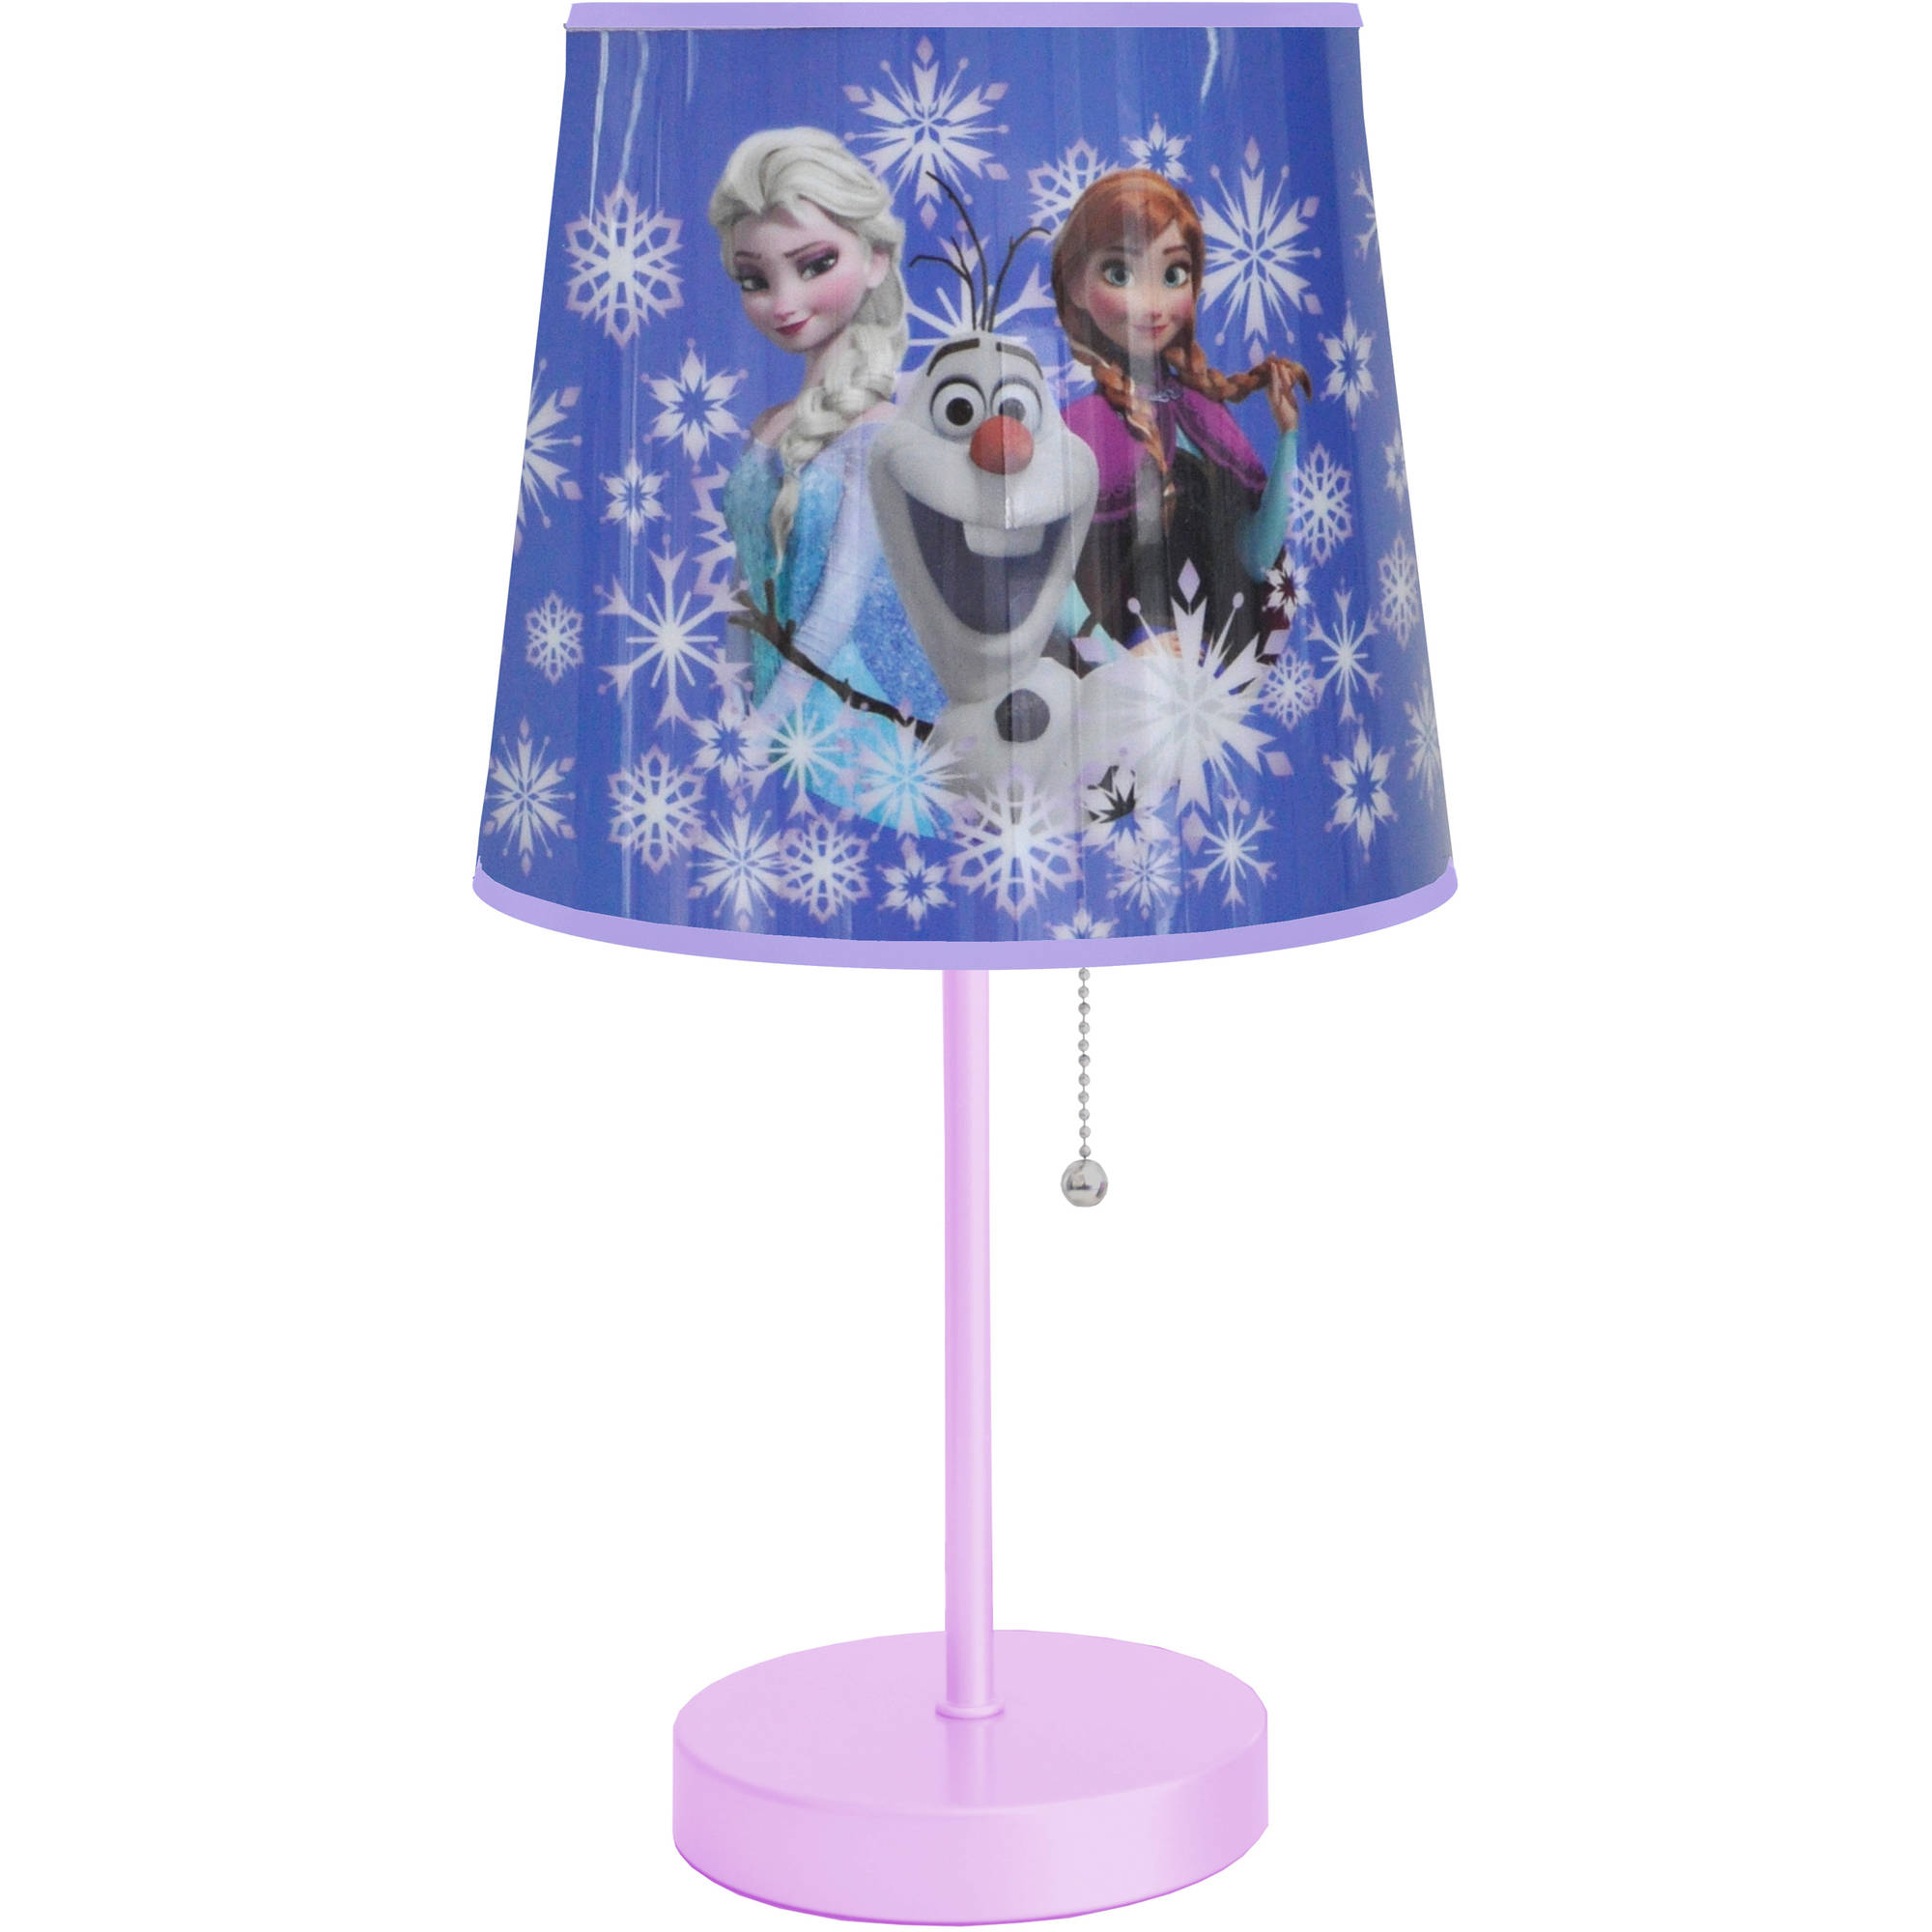 Disney Frozen Snowflake Table Lamp Toy